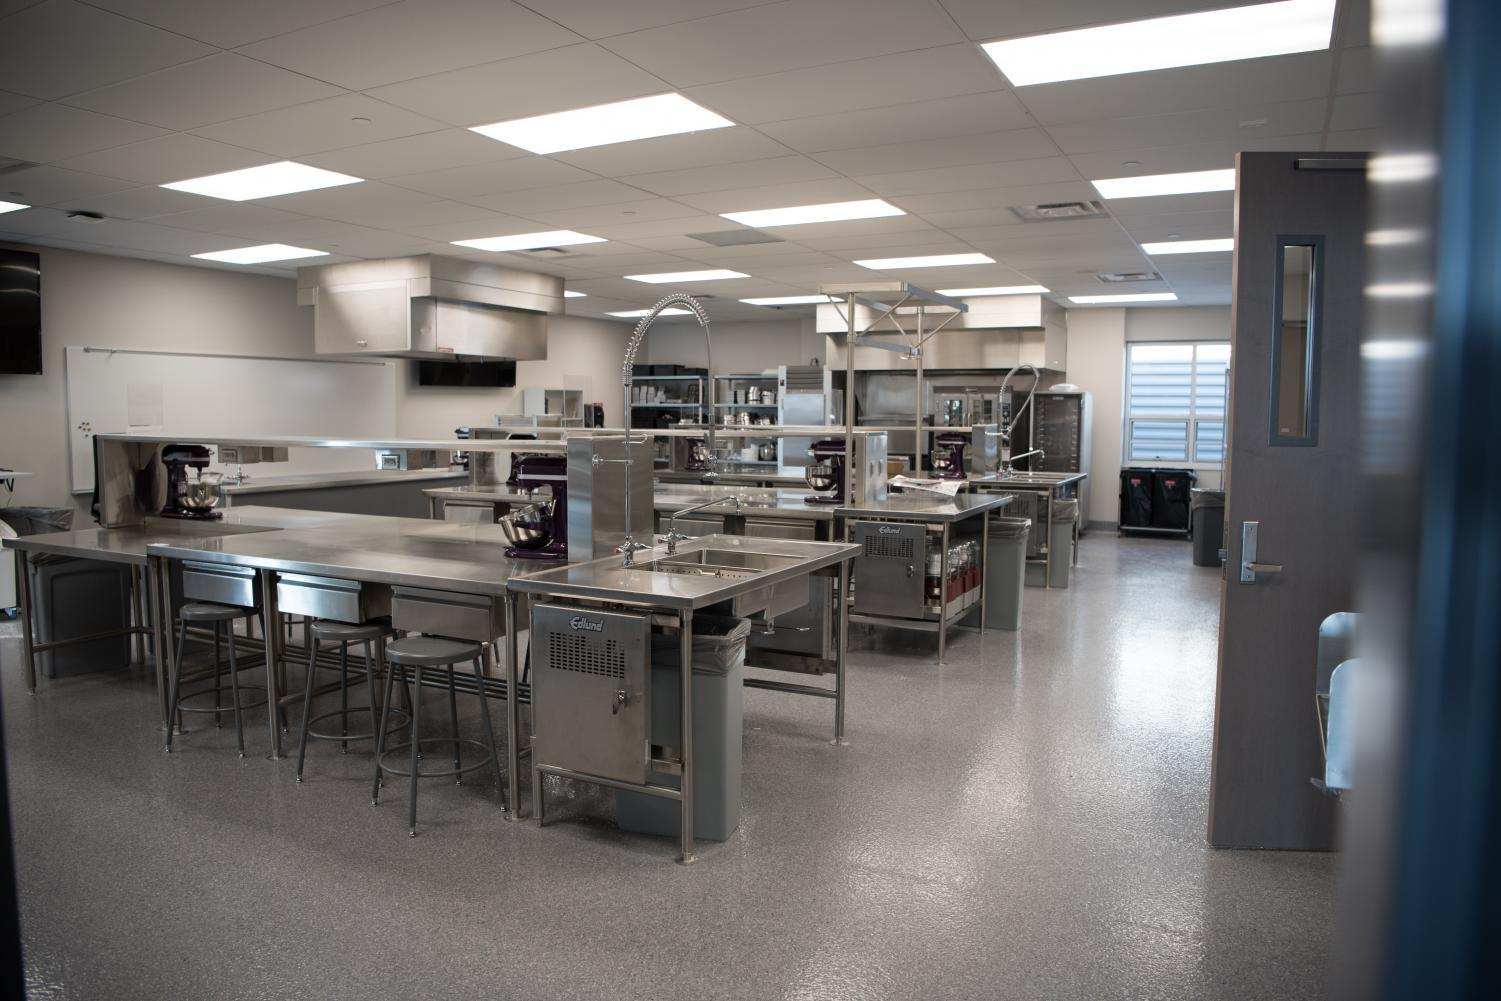 This+is+the+new+culinary+arts+room+completely+updated+from+the+current+ones.+Culinary+arts+students+are+learning+in+a+new+state+of+the+art+cooking+environment%2C+with+industrial+level+sinks+and+updated+cooking+equipment.+